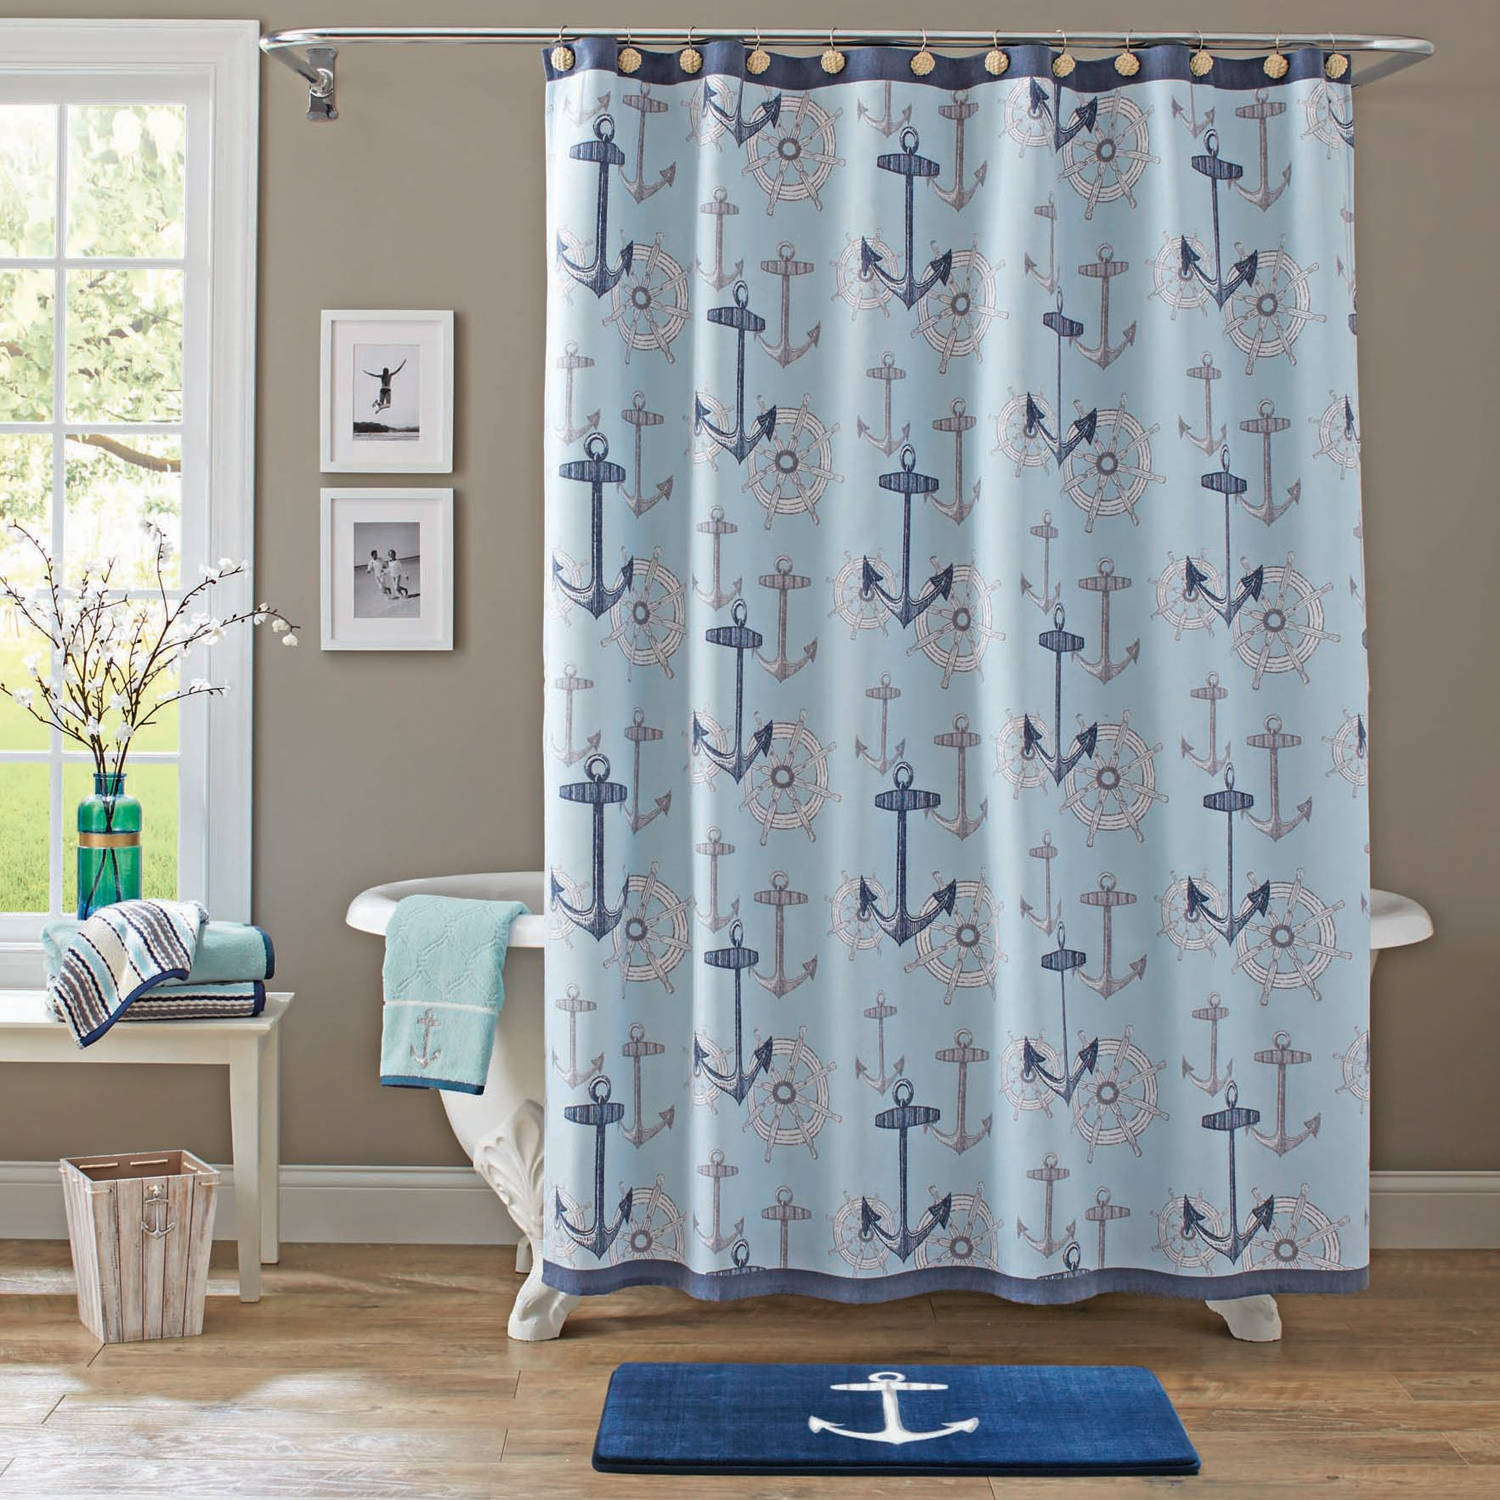 Attractive Better Homes And Gardens Nautical Shower Curtain   Walmart.com